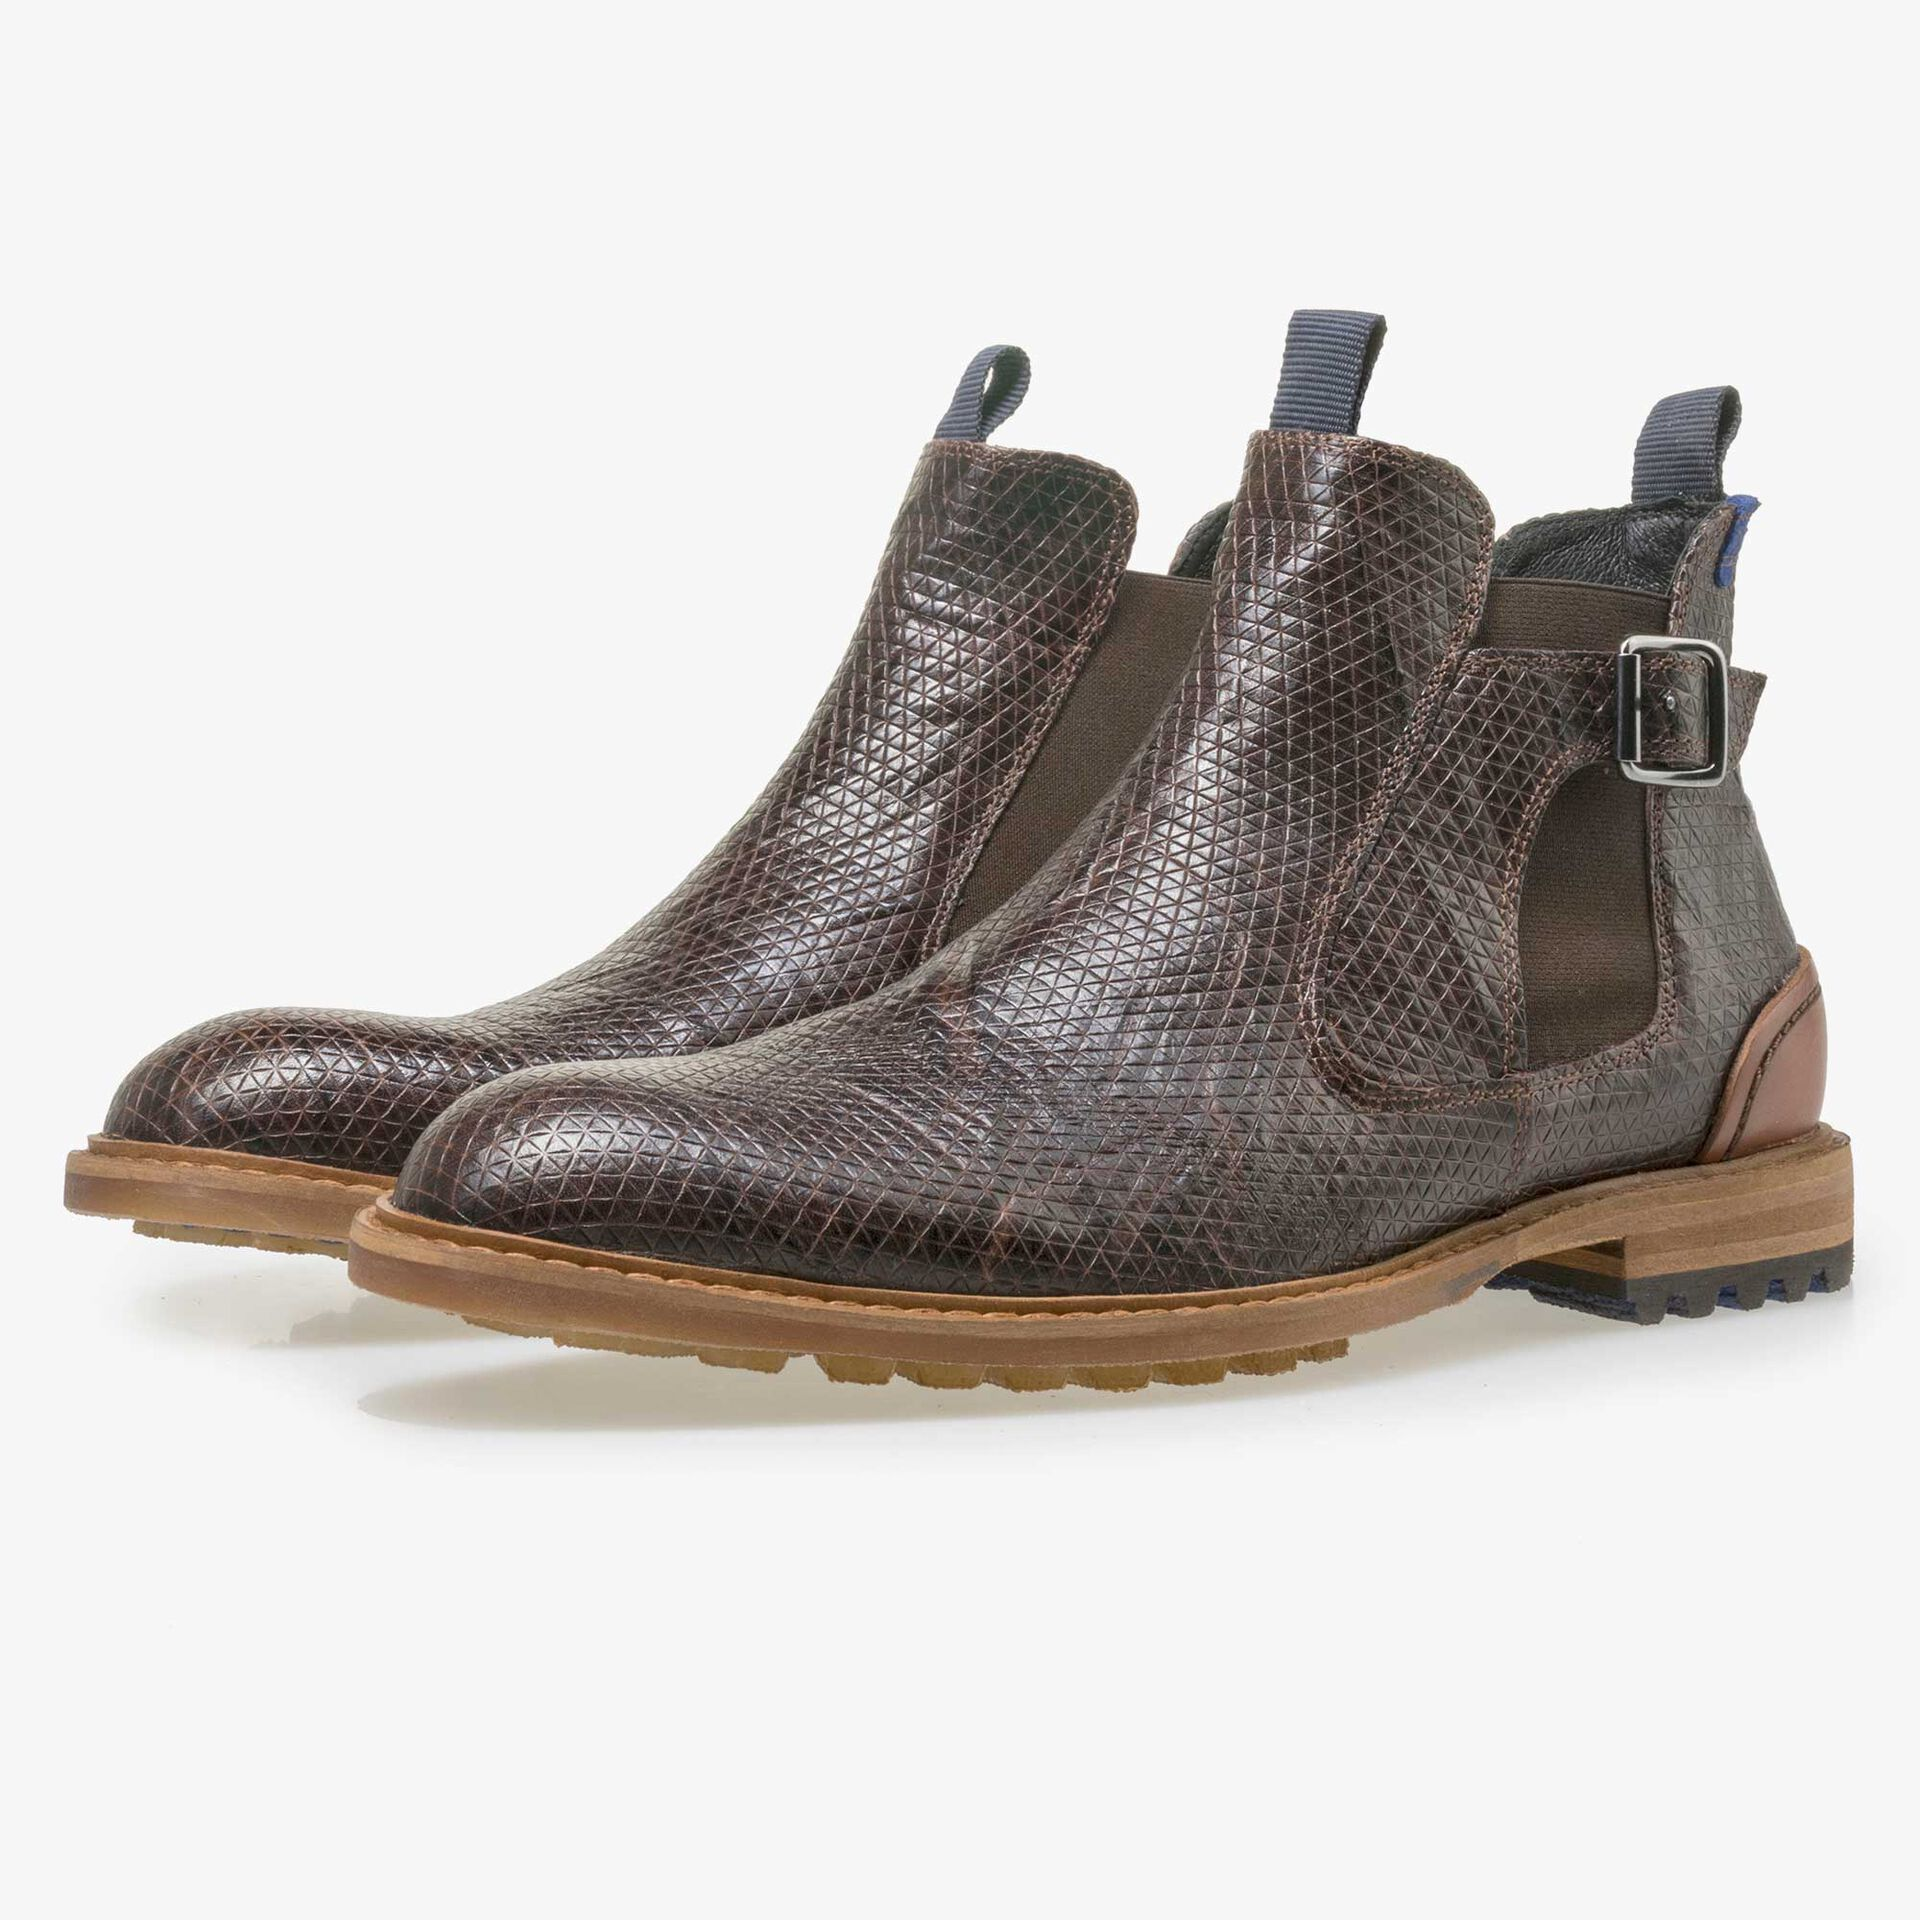 Floris van Bommel men's brown leather Chelsea boot finished with a snake print